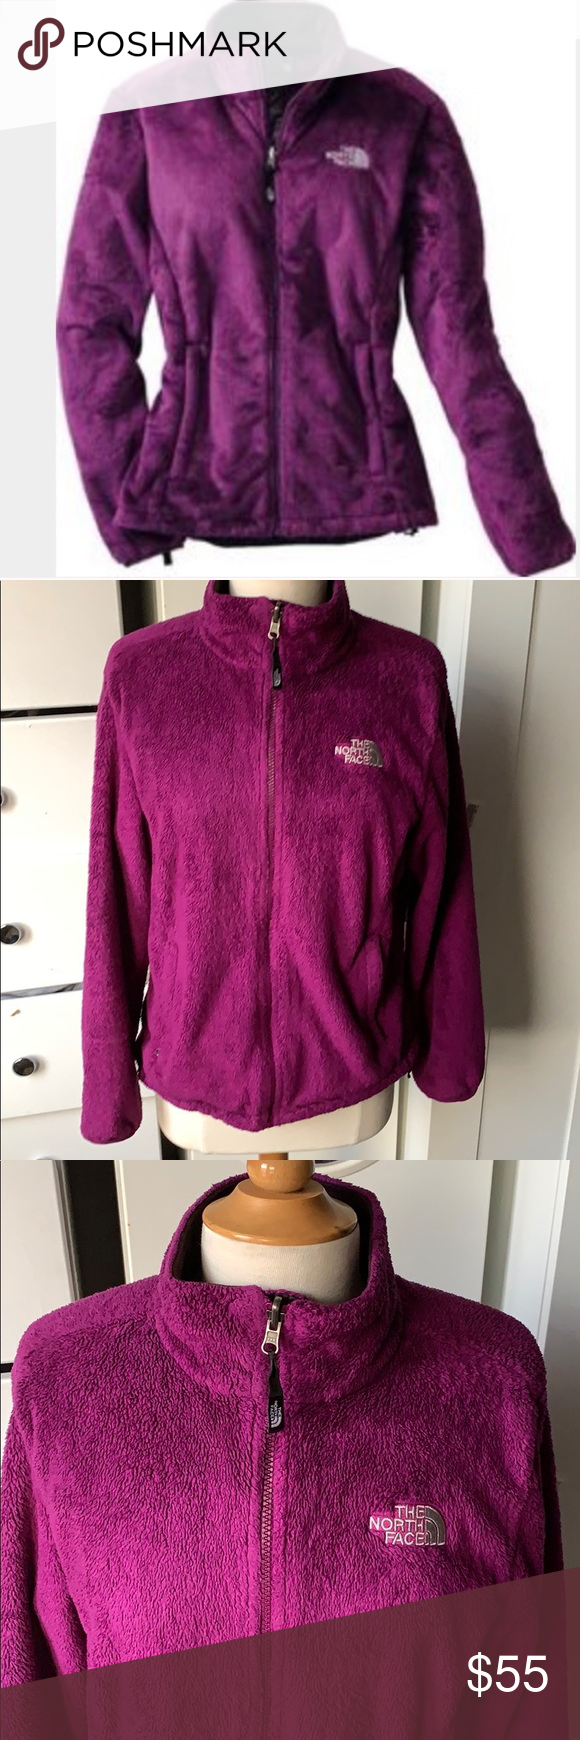 The North Face Fuzzy Jacket Size Large Fuzzy Jacket Clothes Design North Face Jacket [ 1740 x 580 Pixel ]